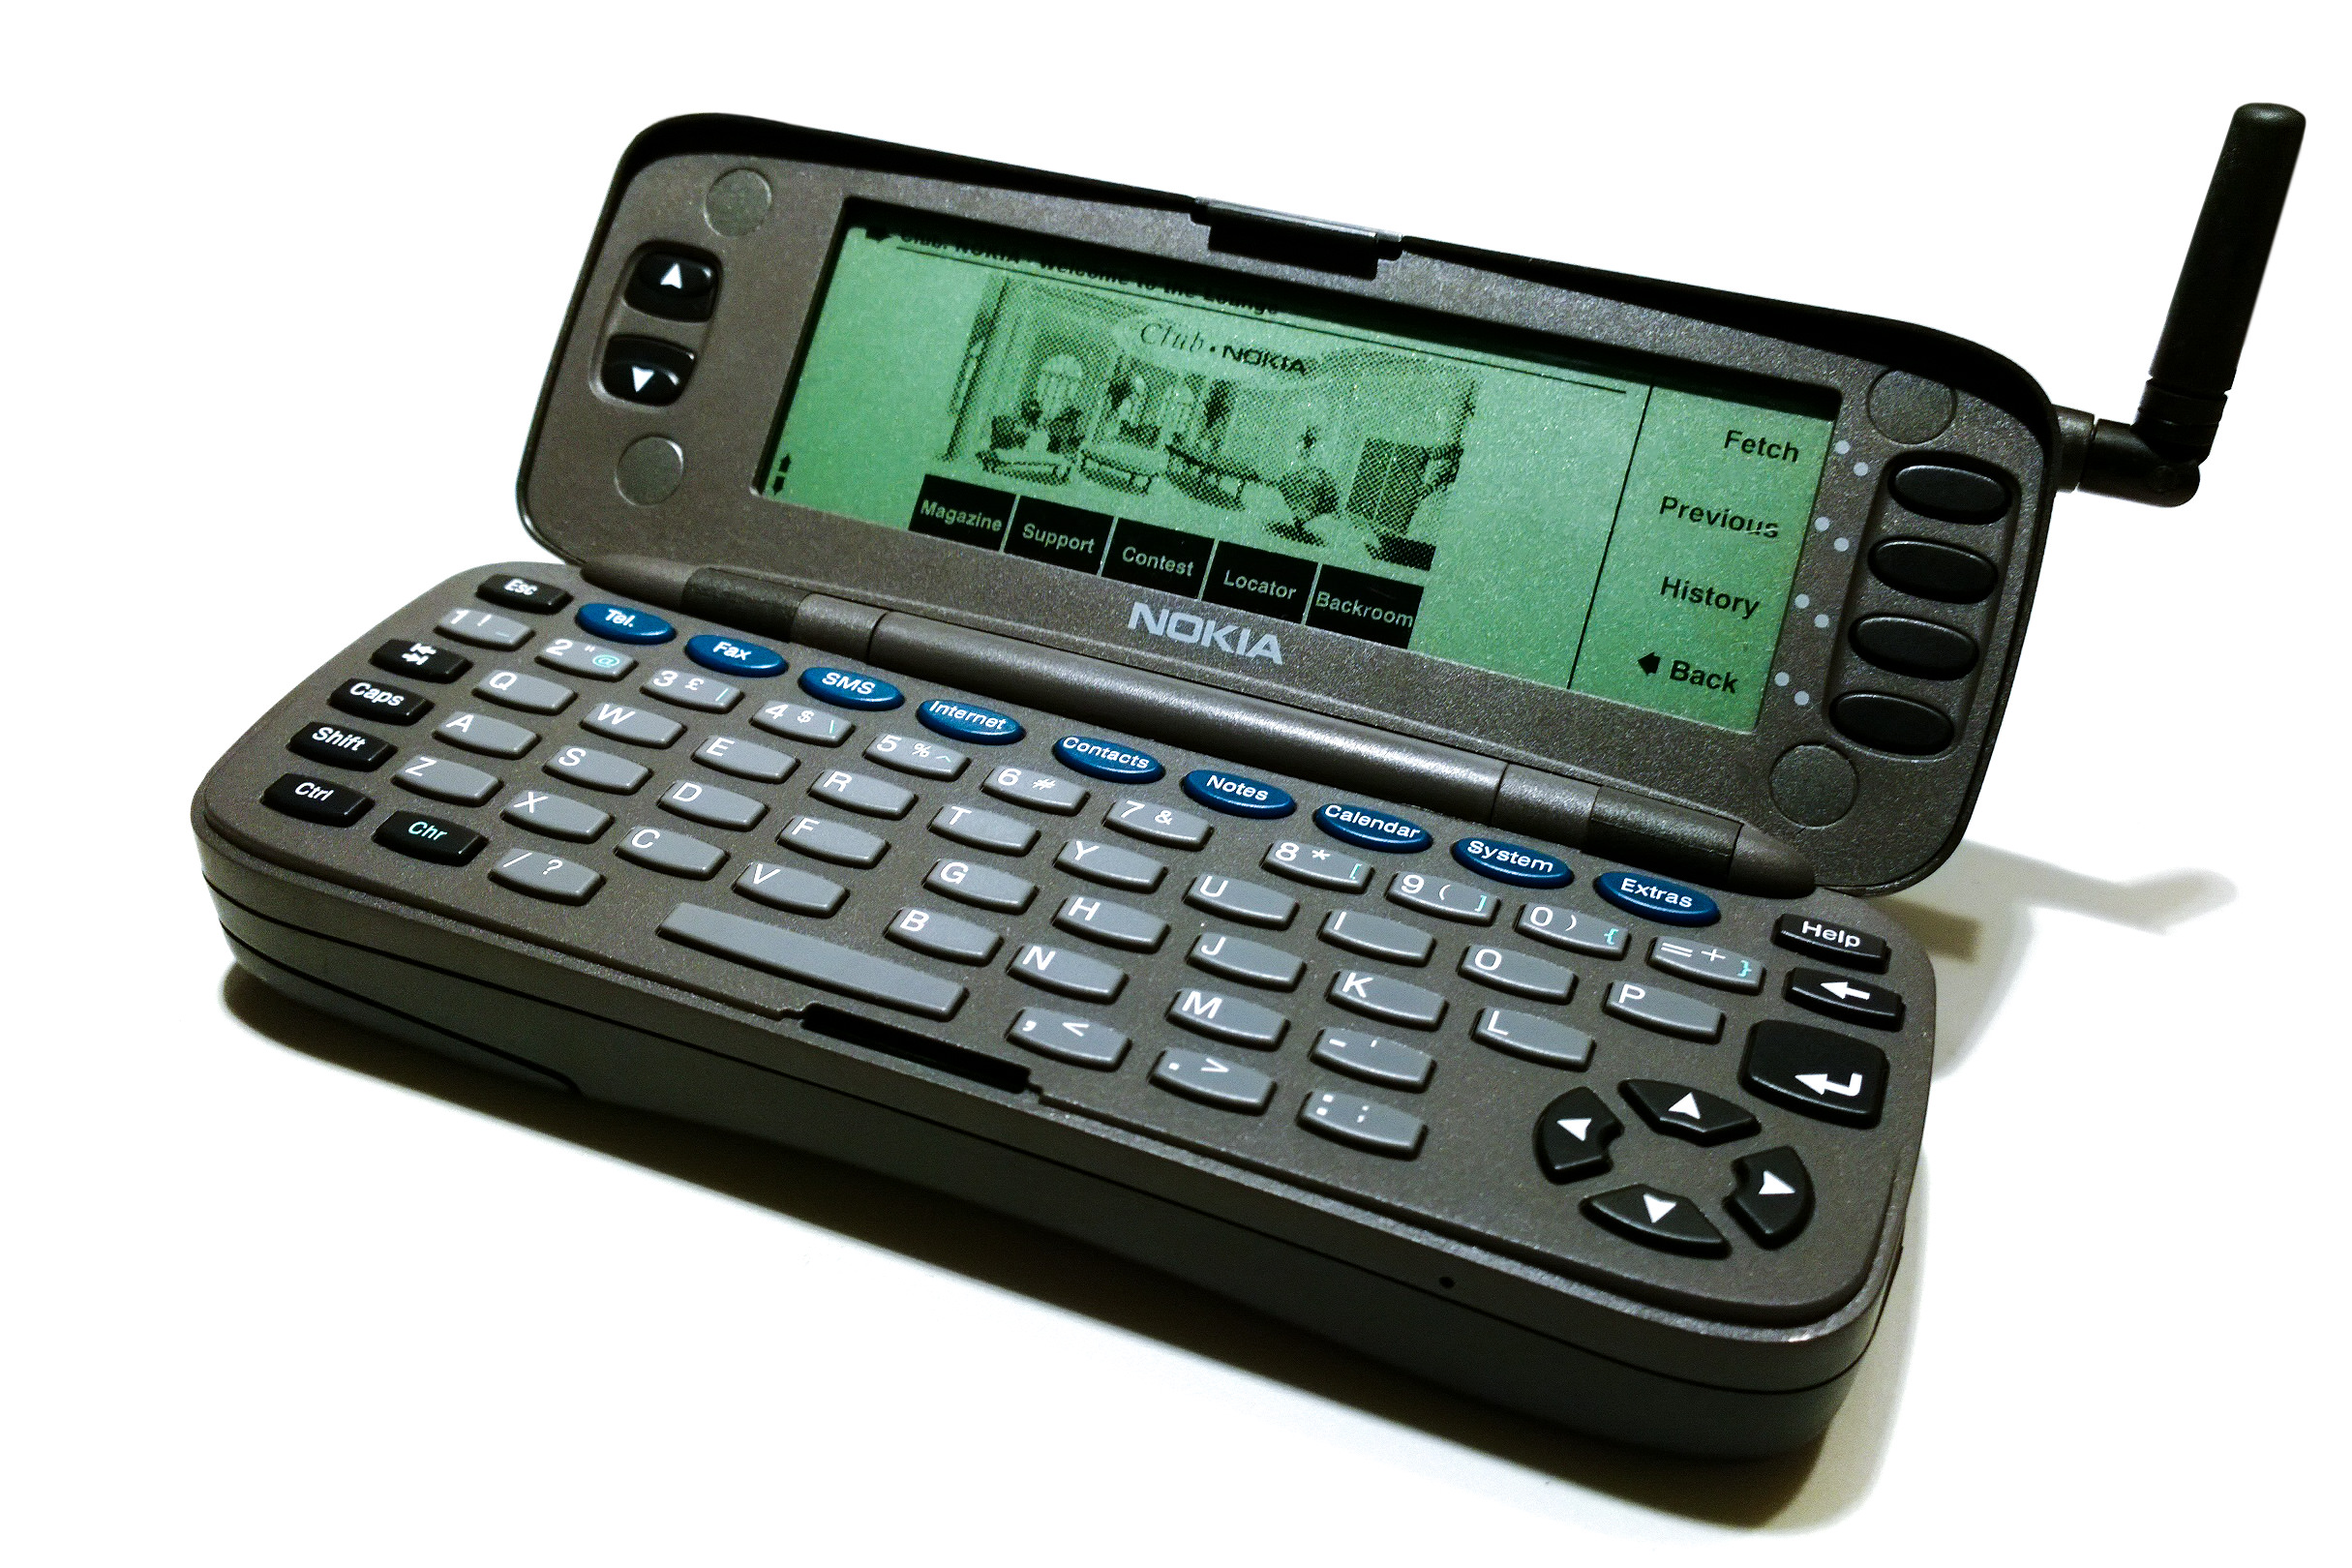 https://upload.wikimedia.org/wikipedia/commons/e/e9/Nokia_Communicator_9000_Opened_01.jpg